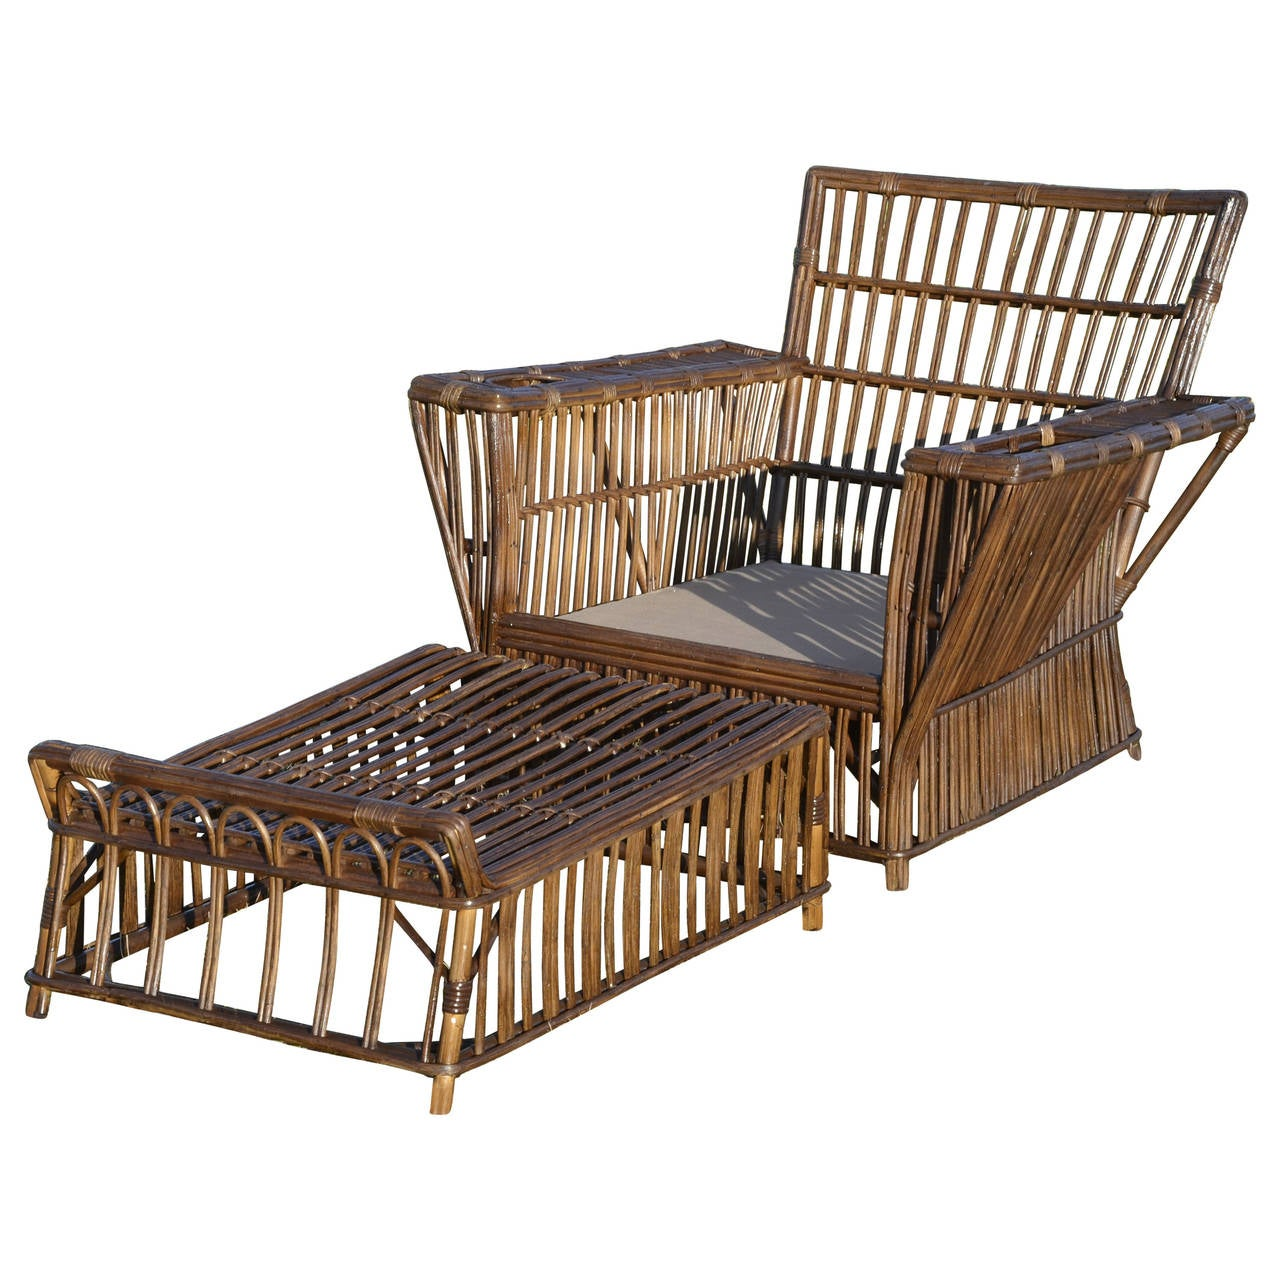 Antique wicker lounge chair - Antique Wicker Lounge Chair And Ottoman 1